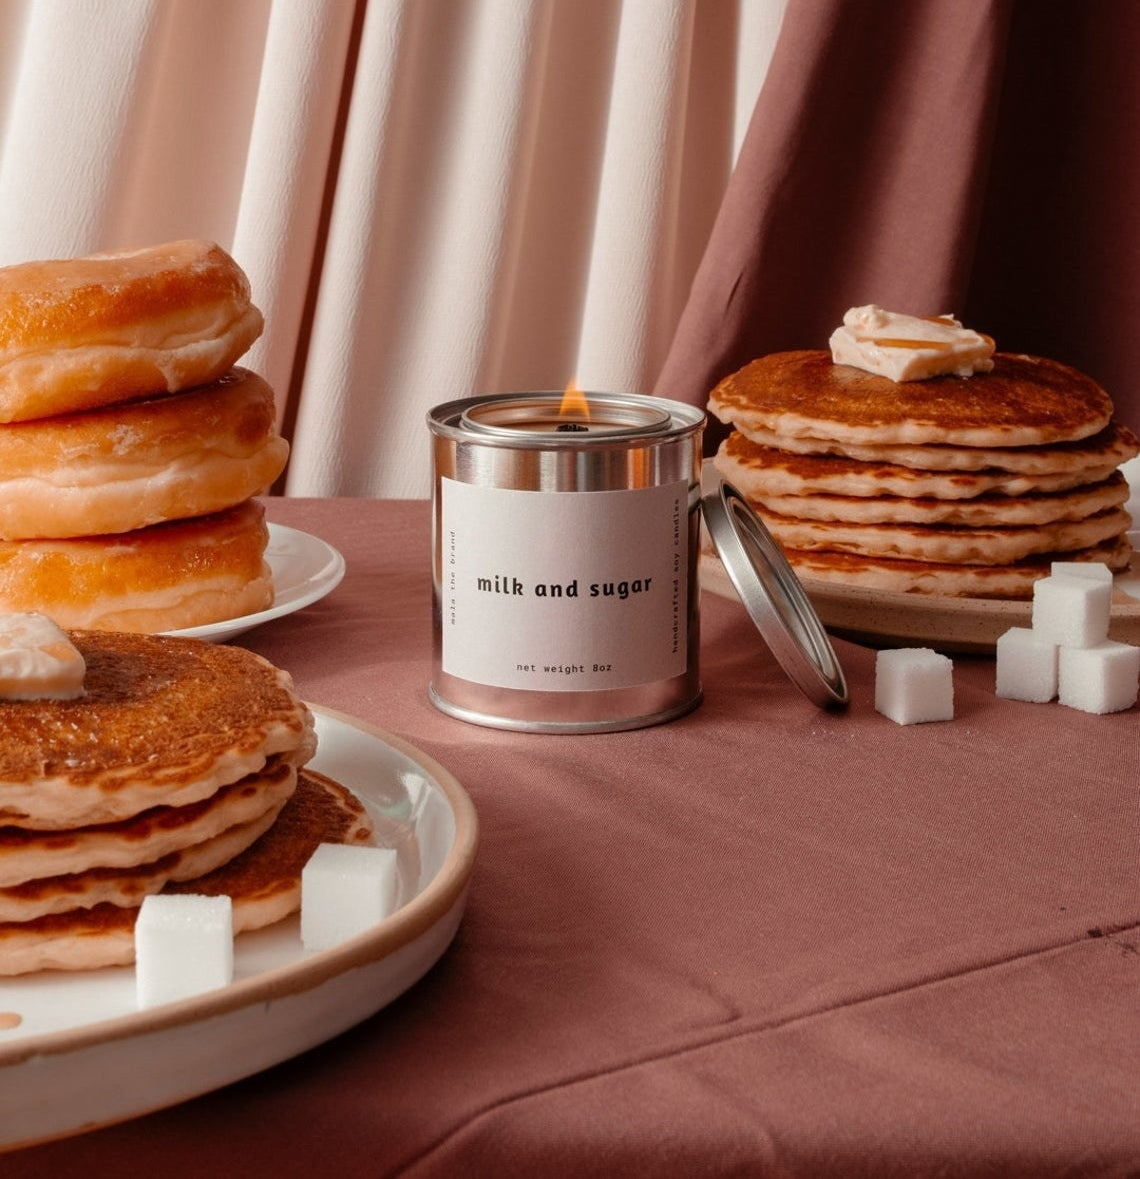 A candle surrounded by plates of pancakes